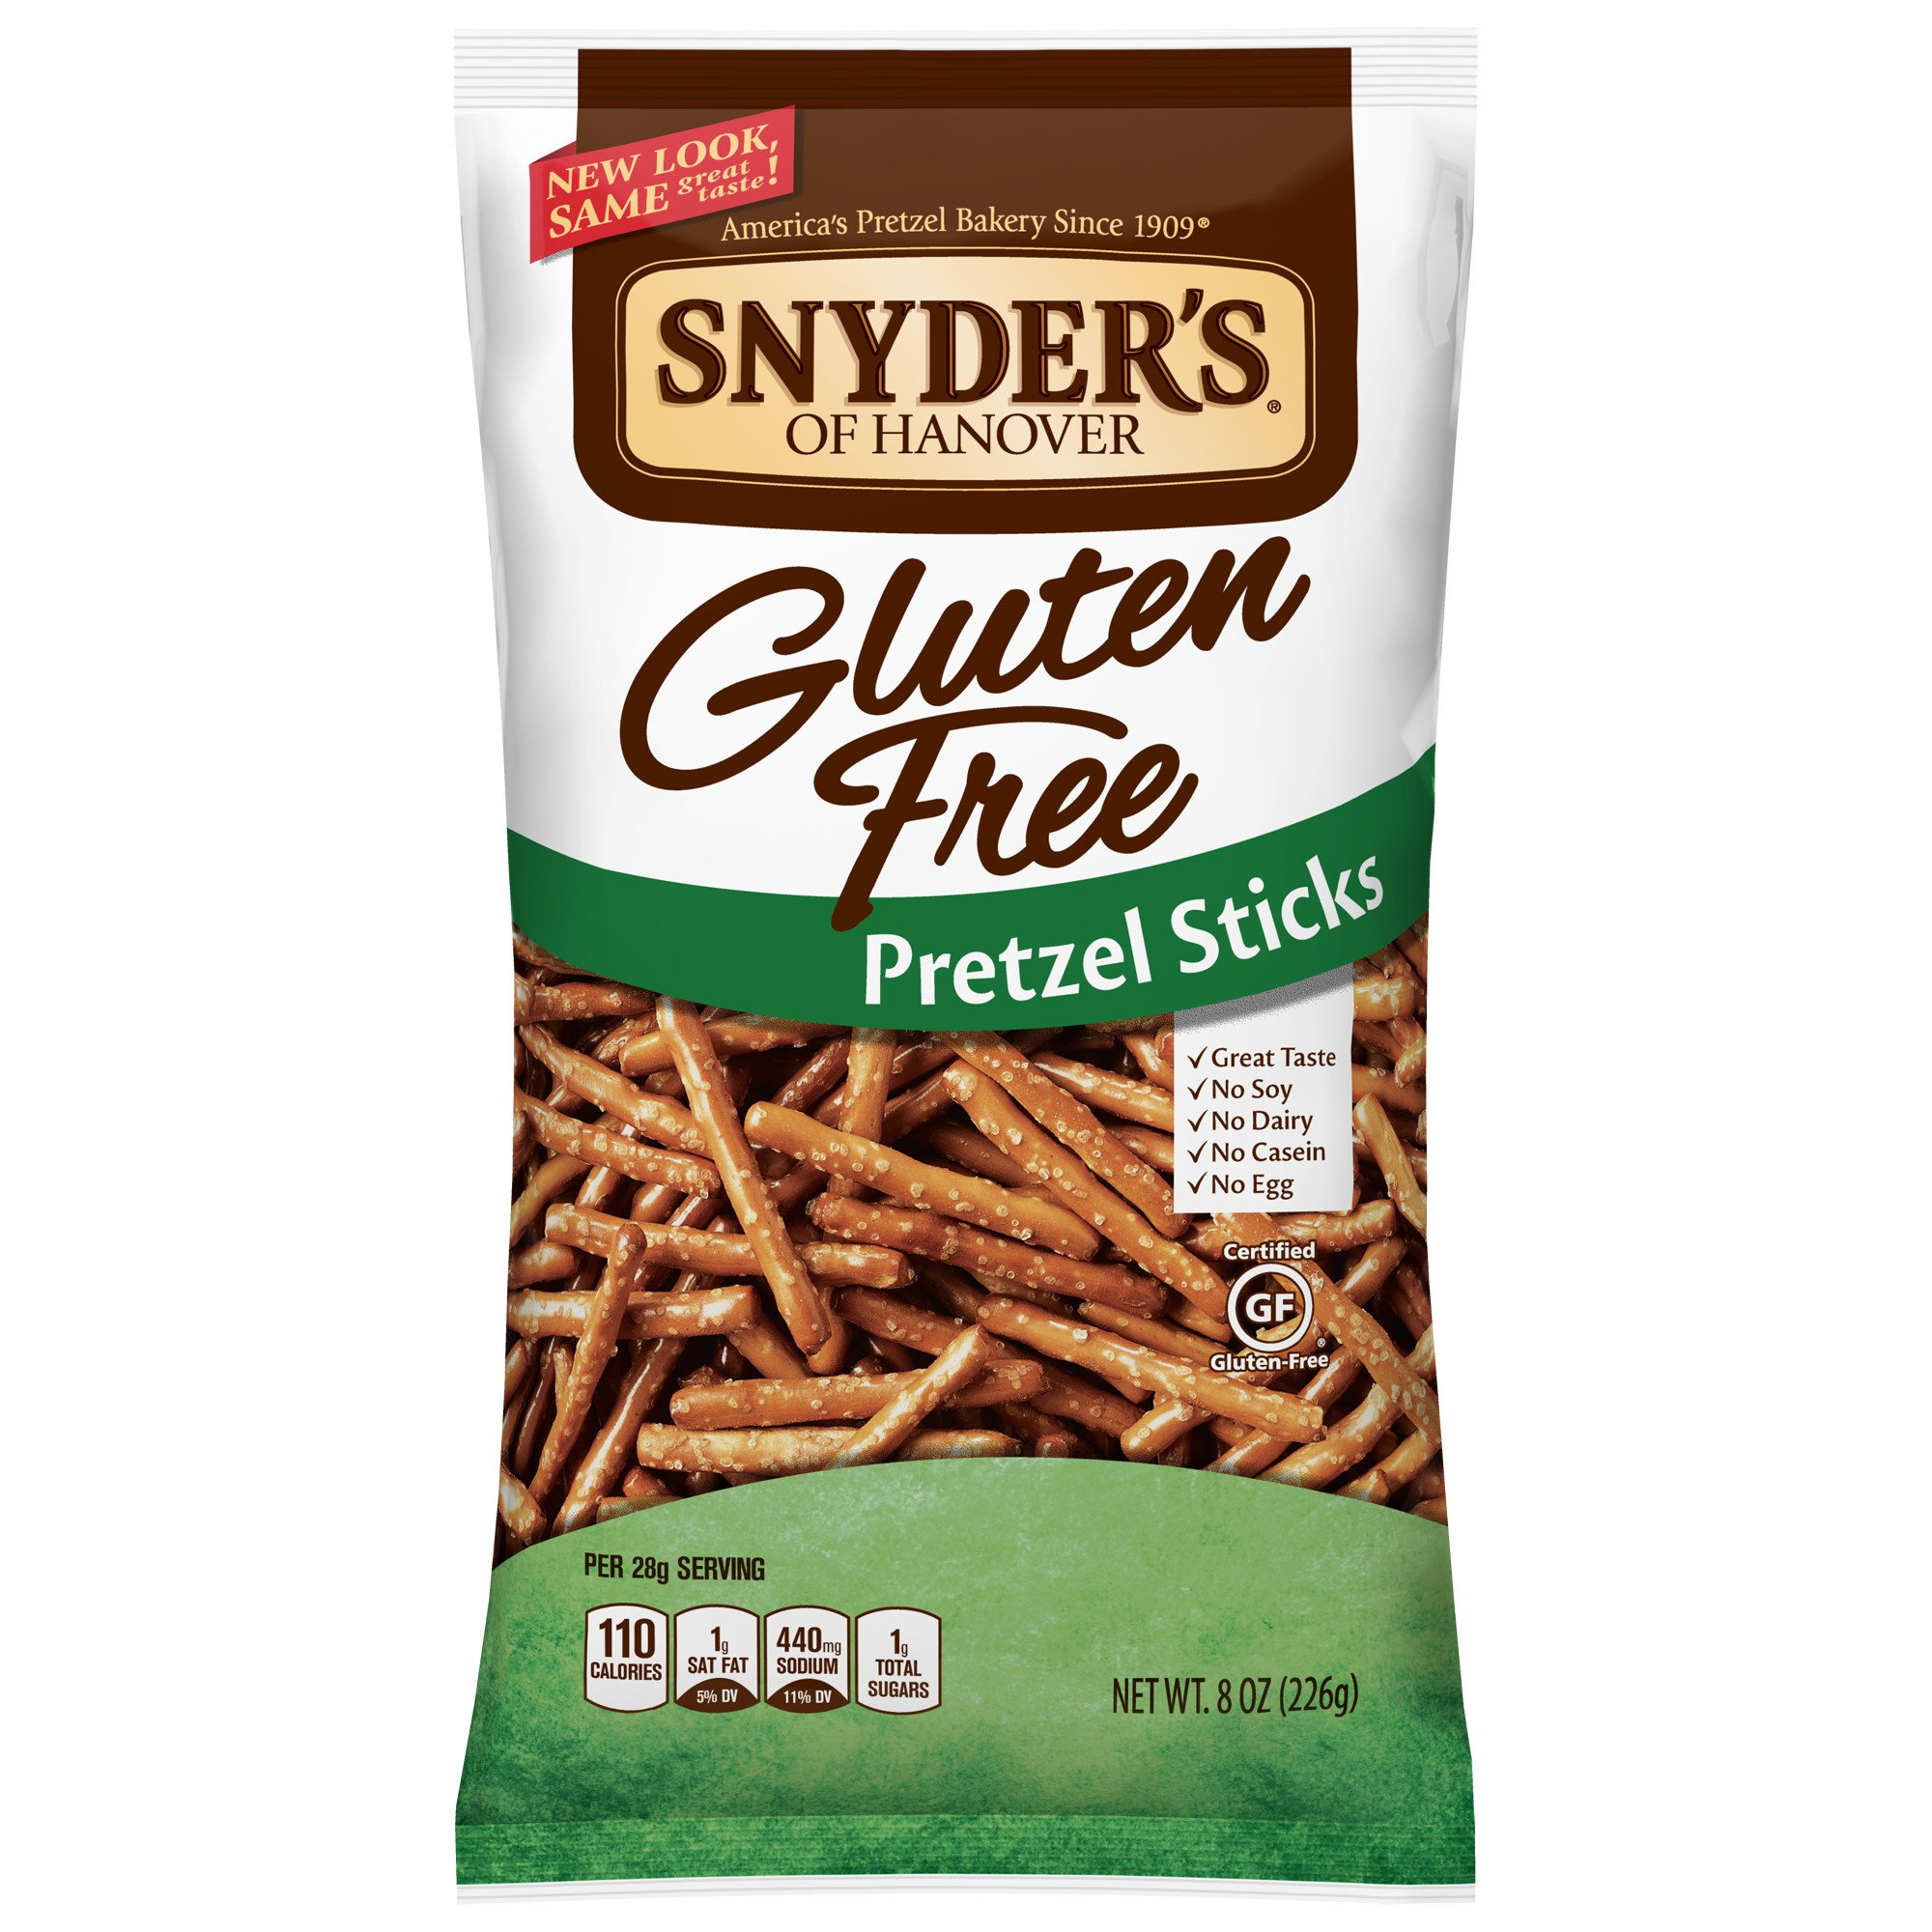 Snyder's of Hanover Gluten Free Pretzel Sticks, 8 Ounce (Pack of 12) by Snyder's of Hanover (Image #1)